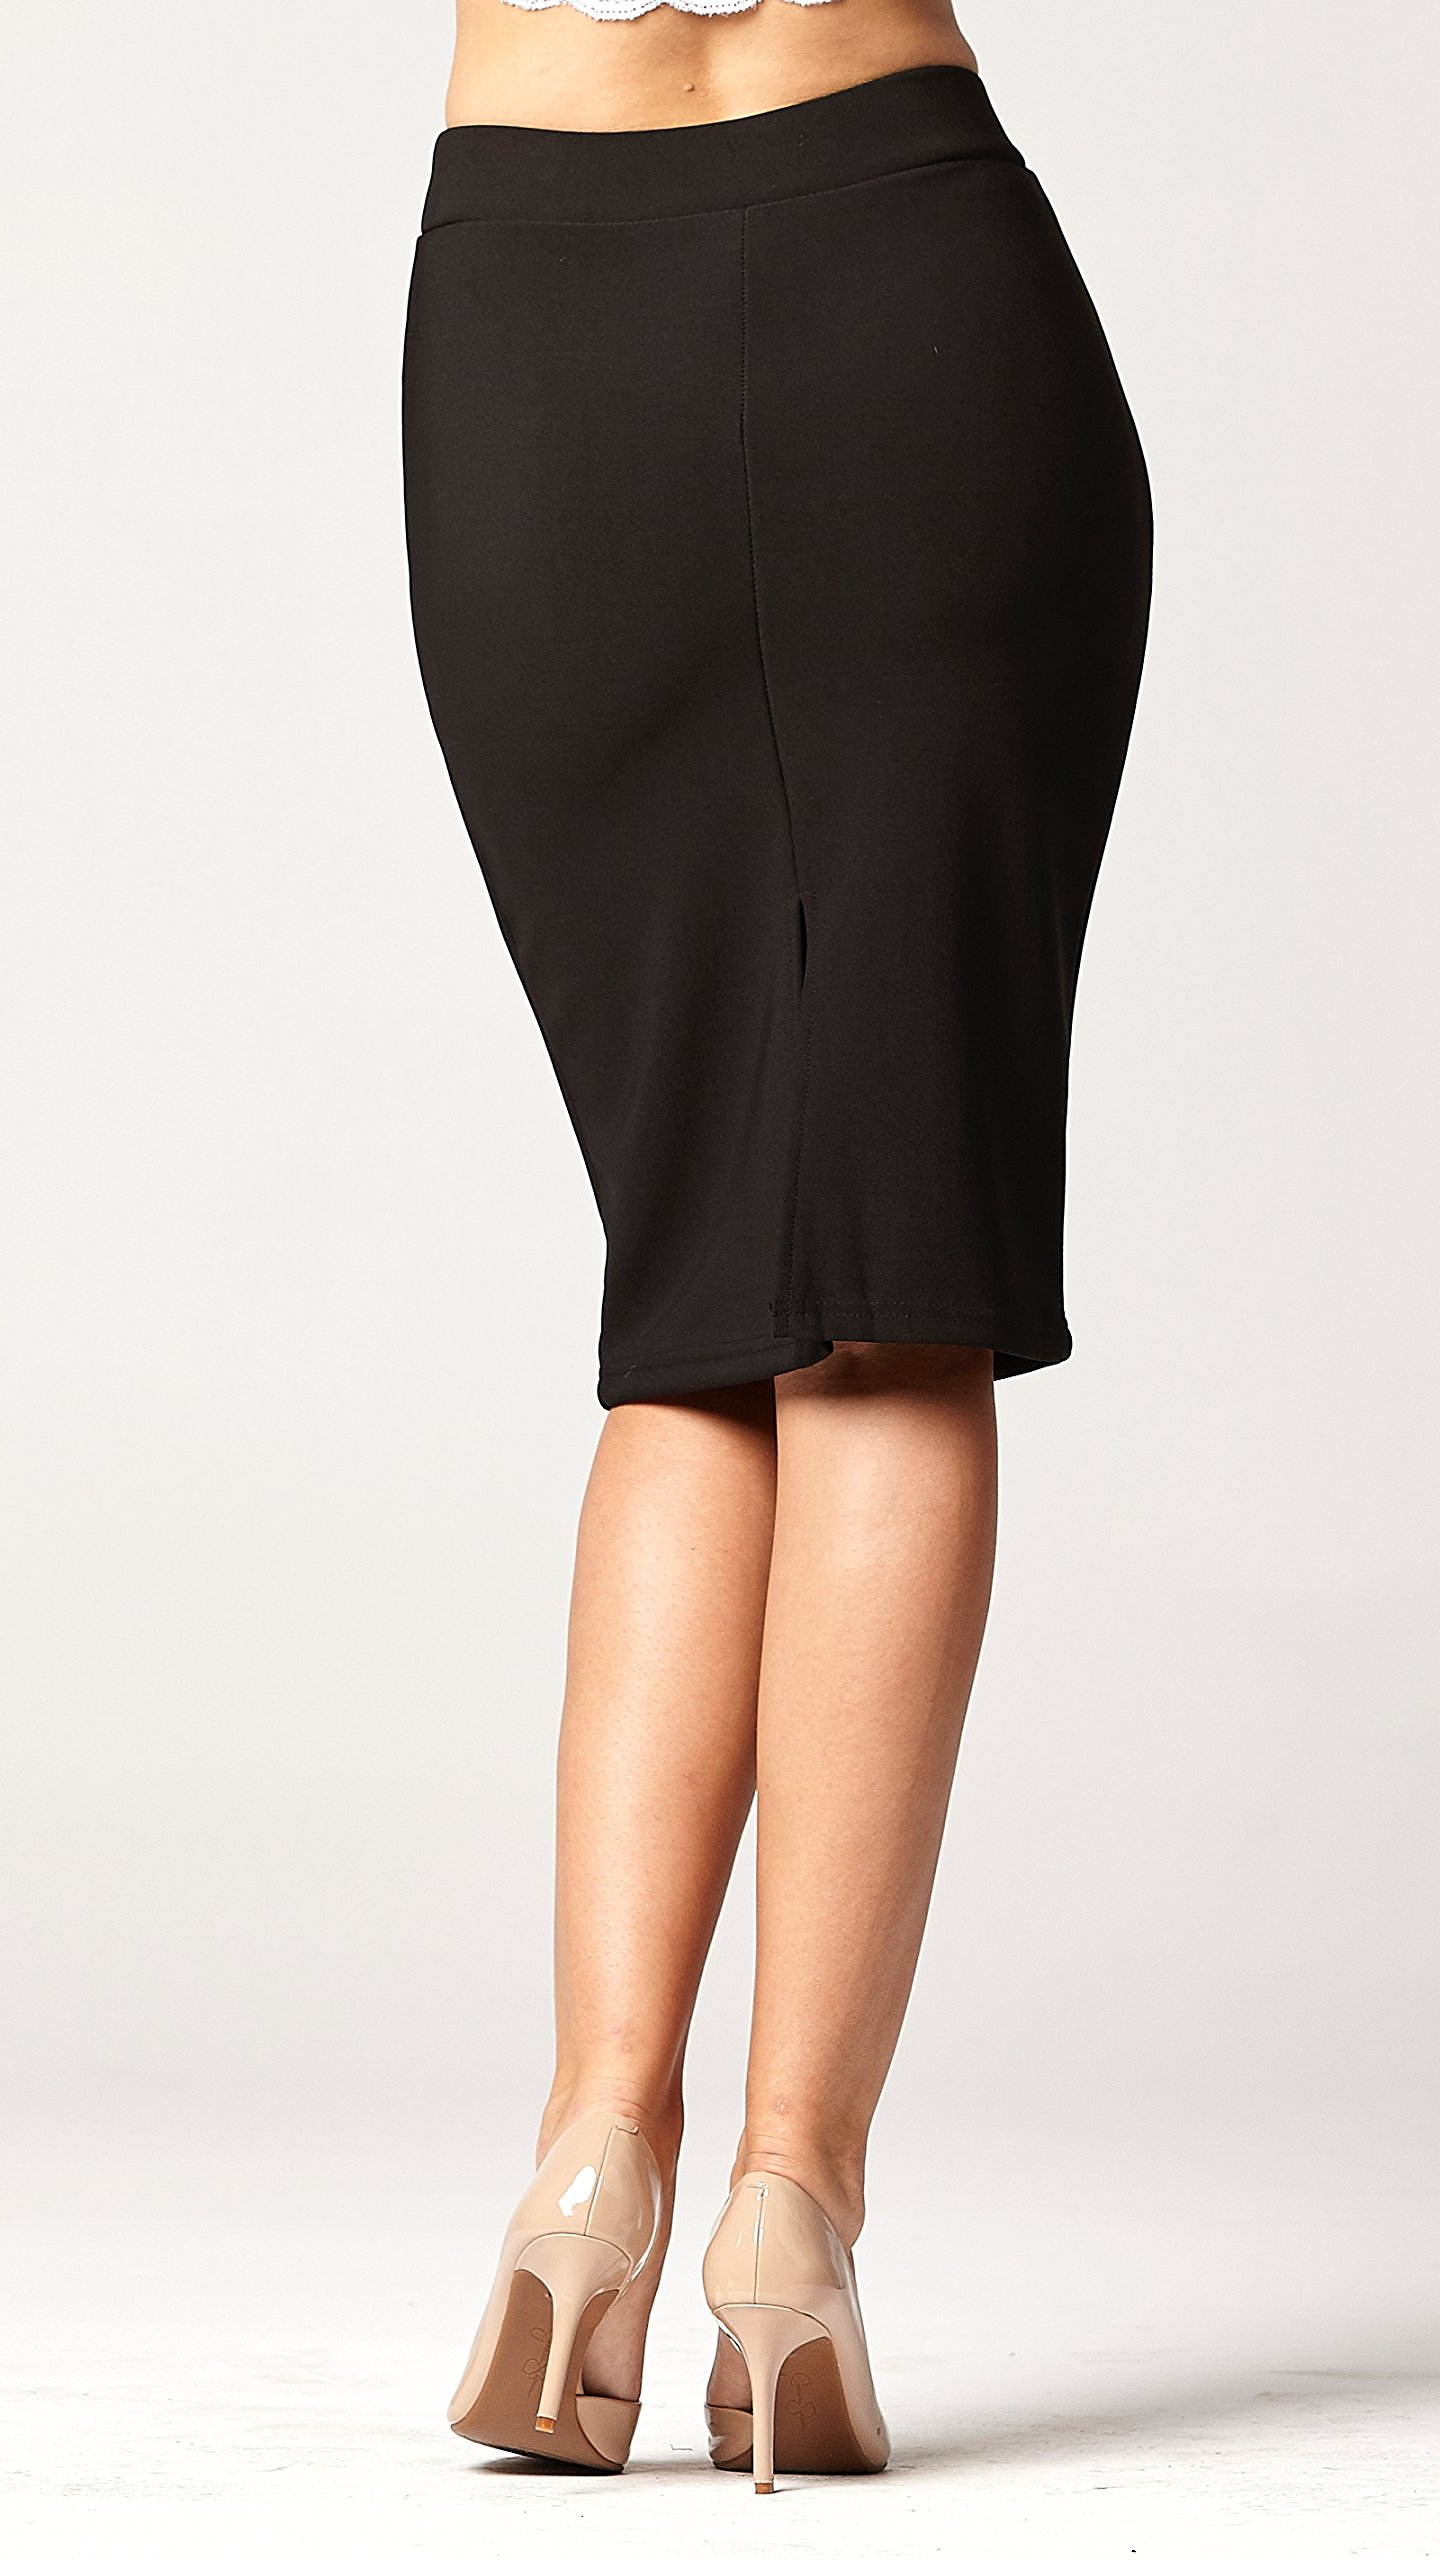 Conceited Premium Stretch Pencil Skirt - 10 Colors - by (Small, Black) by Conceited (Image #5)